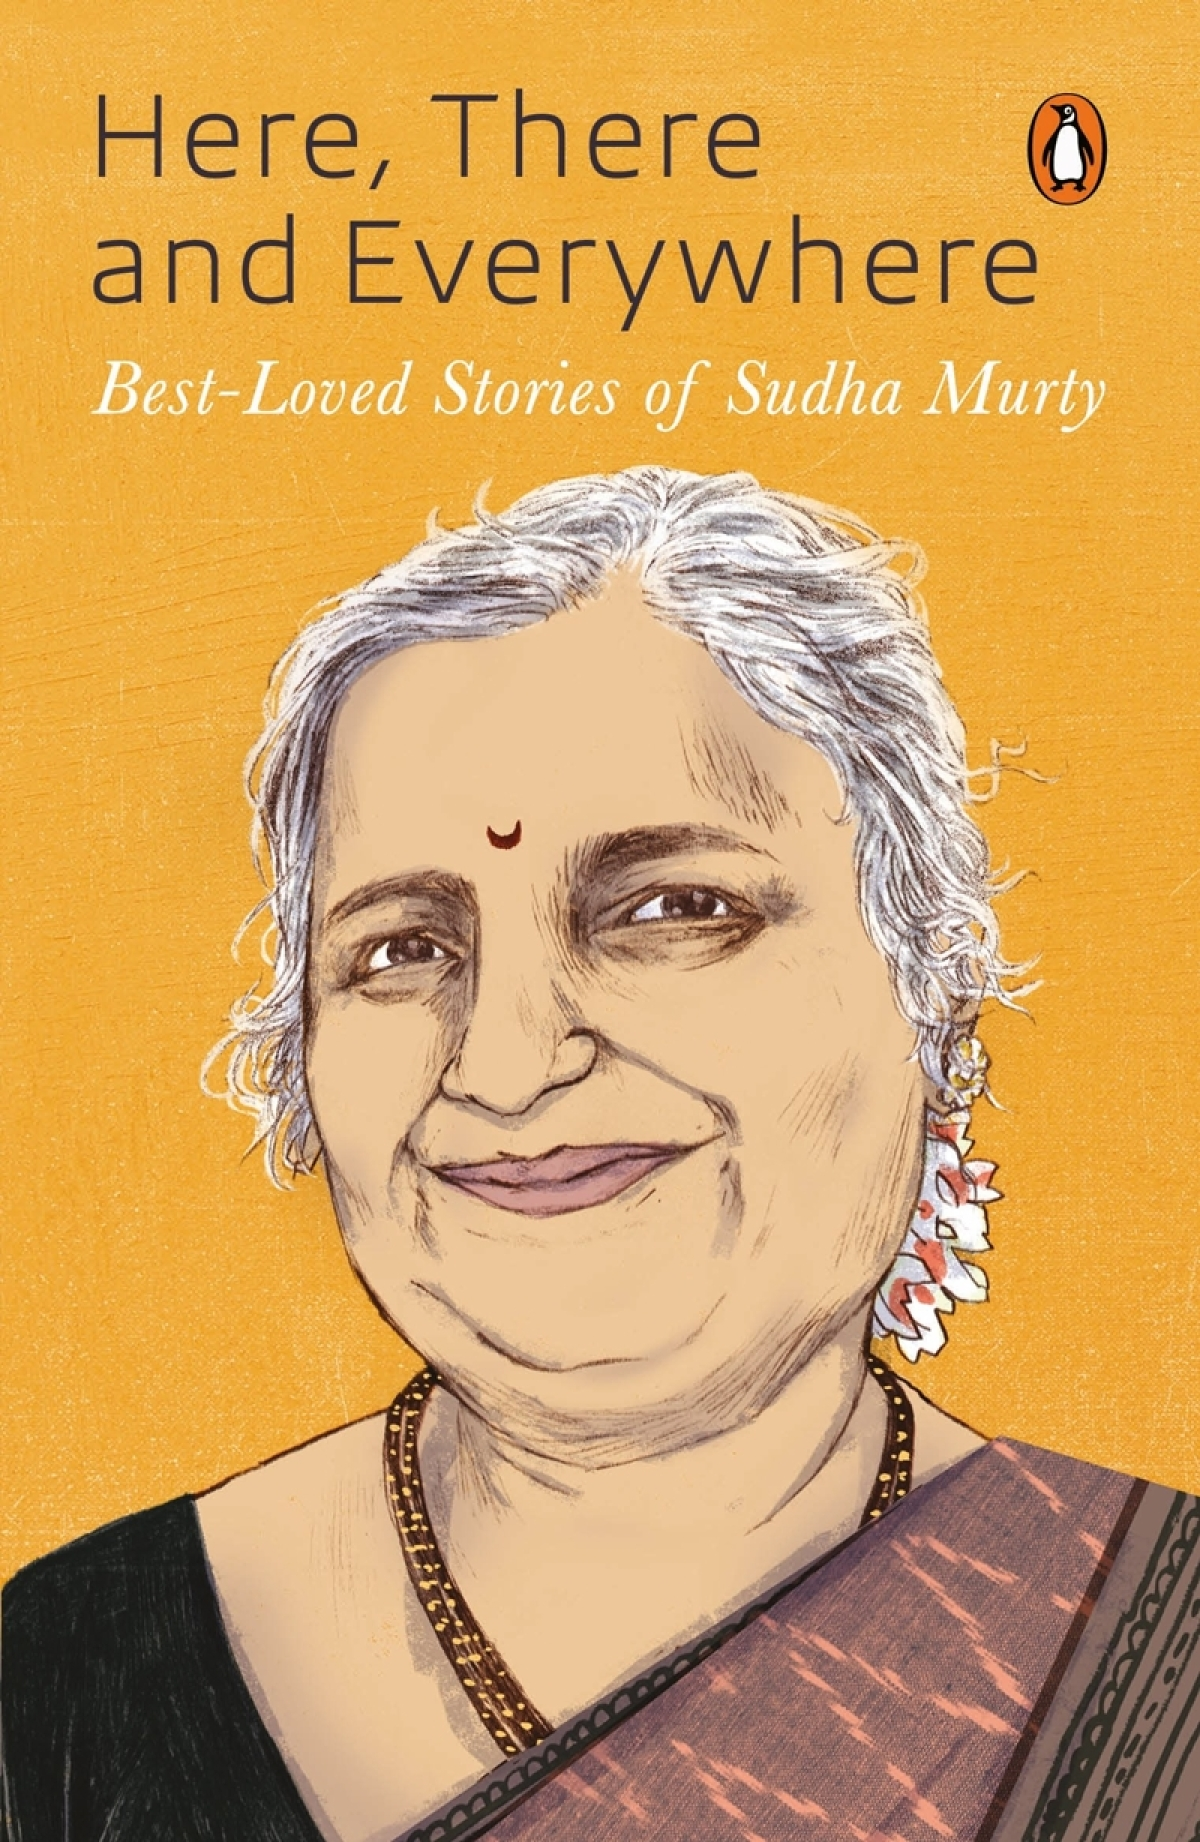 Here, There and Everywhere: Best-Loved Stories of Sudha Murty by Murty Sudha- Review